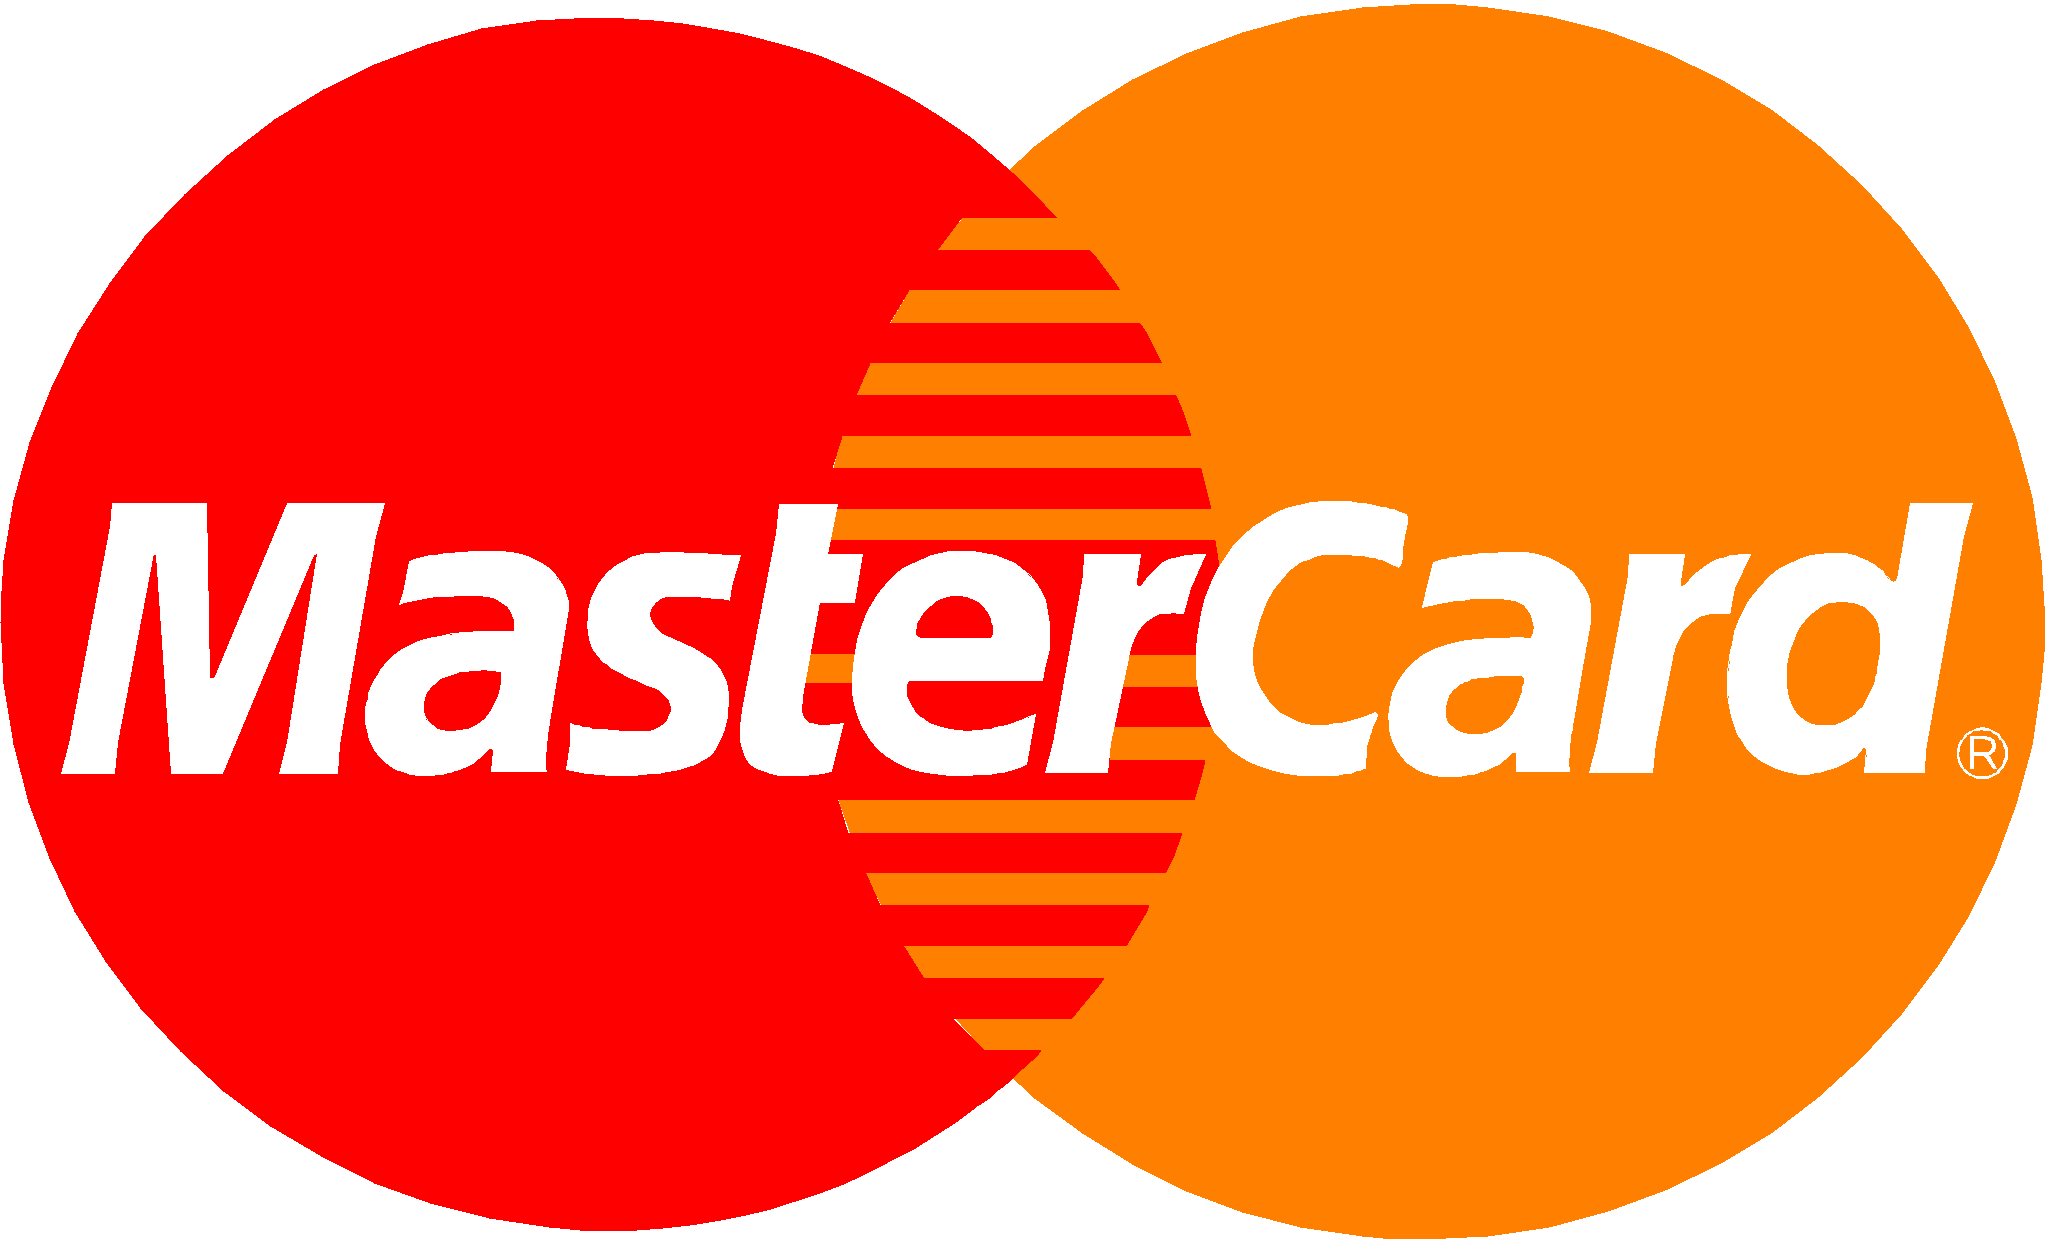 Master Card 信用卡